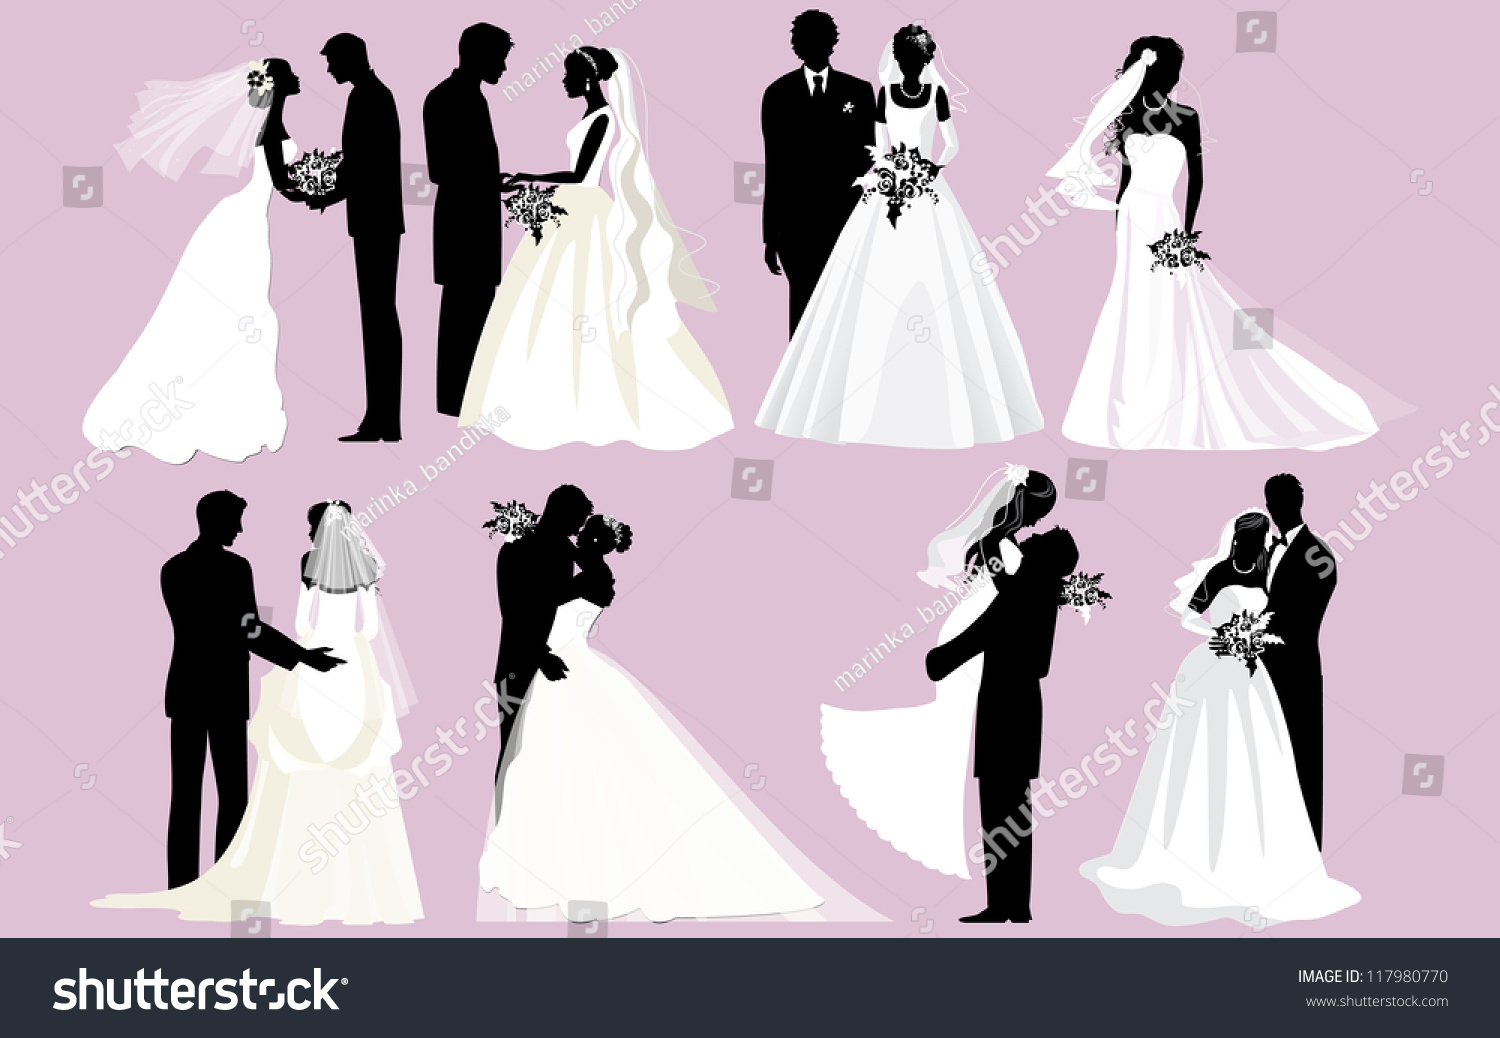 Wedding Silhouettes Vector Bride Groom Silhouettes Stock